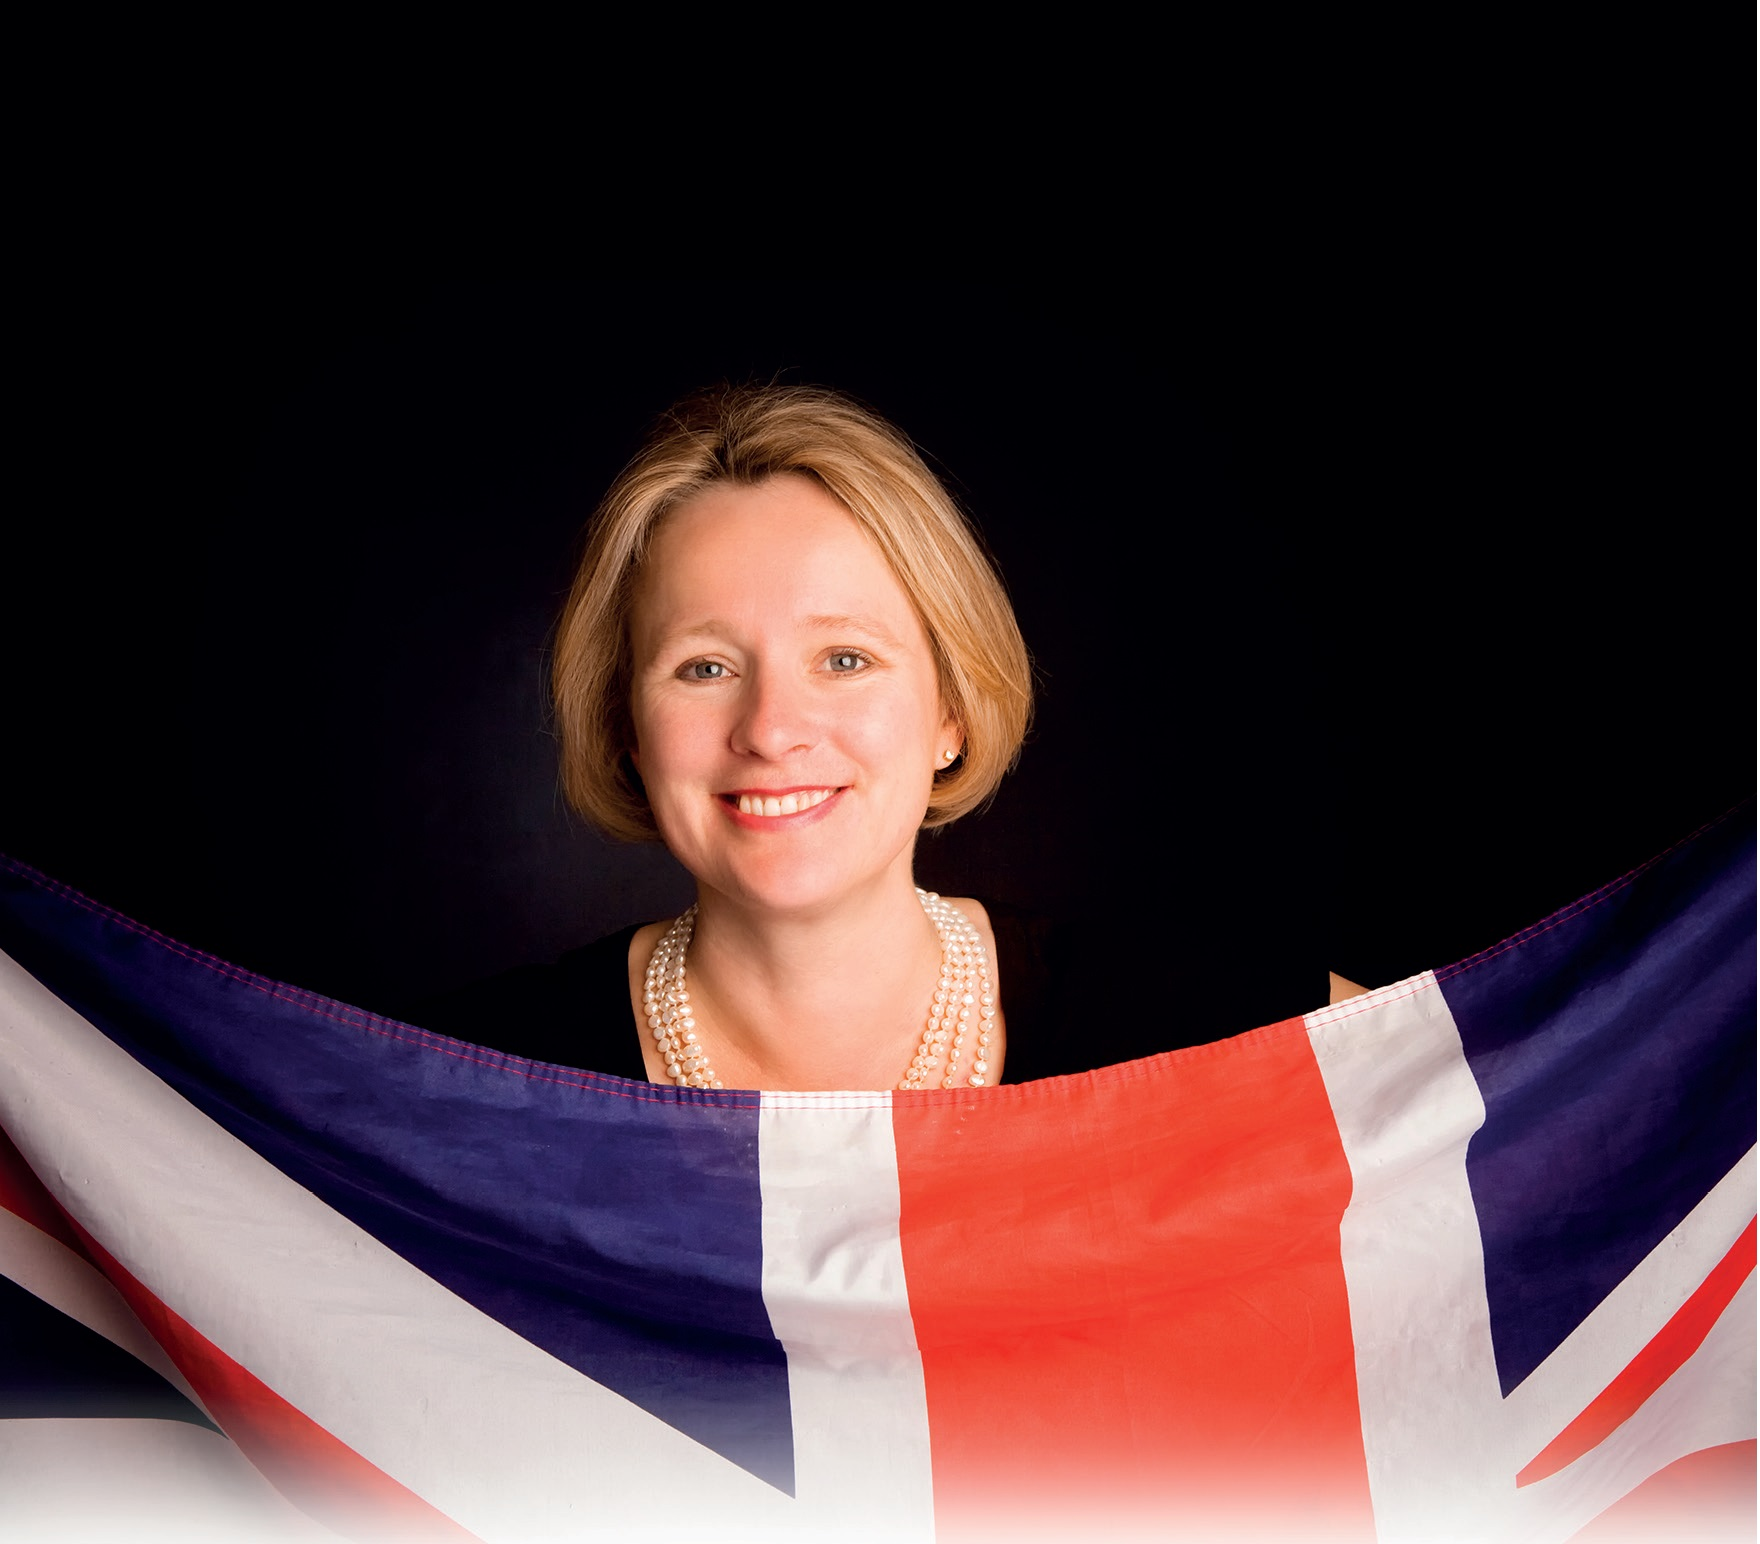 British MEP Vicky Ford holds a Union Jack flag